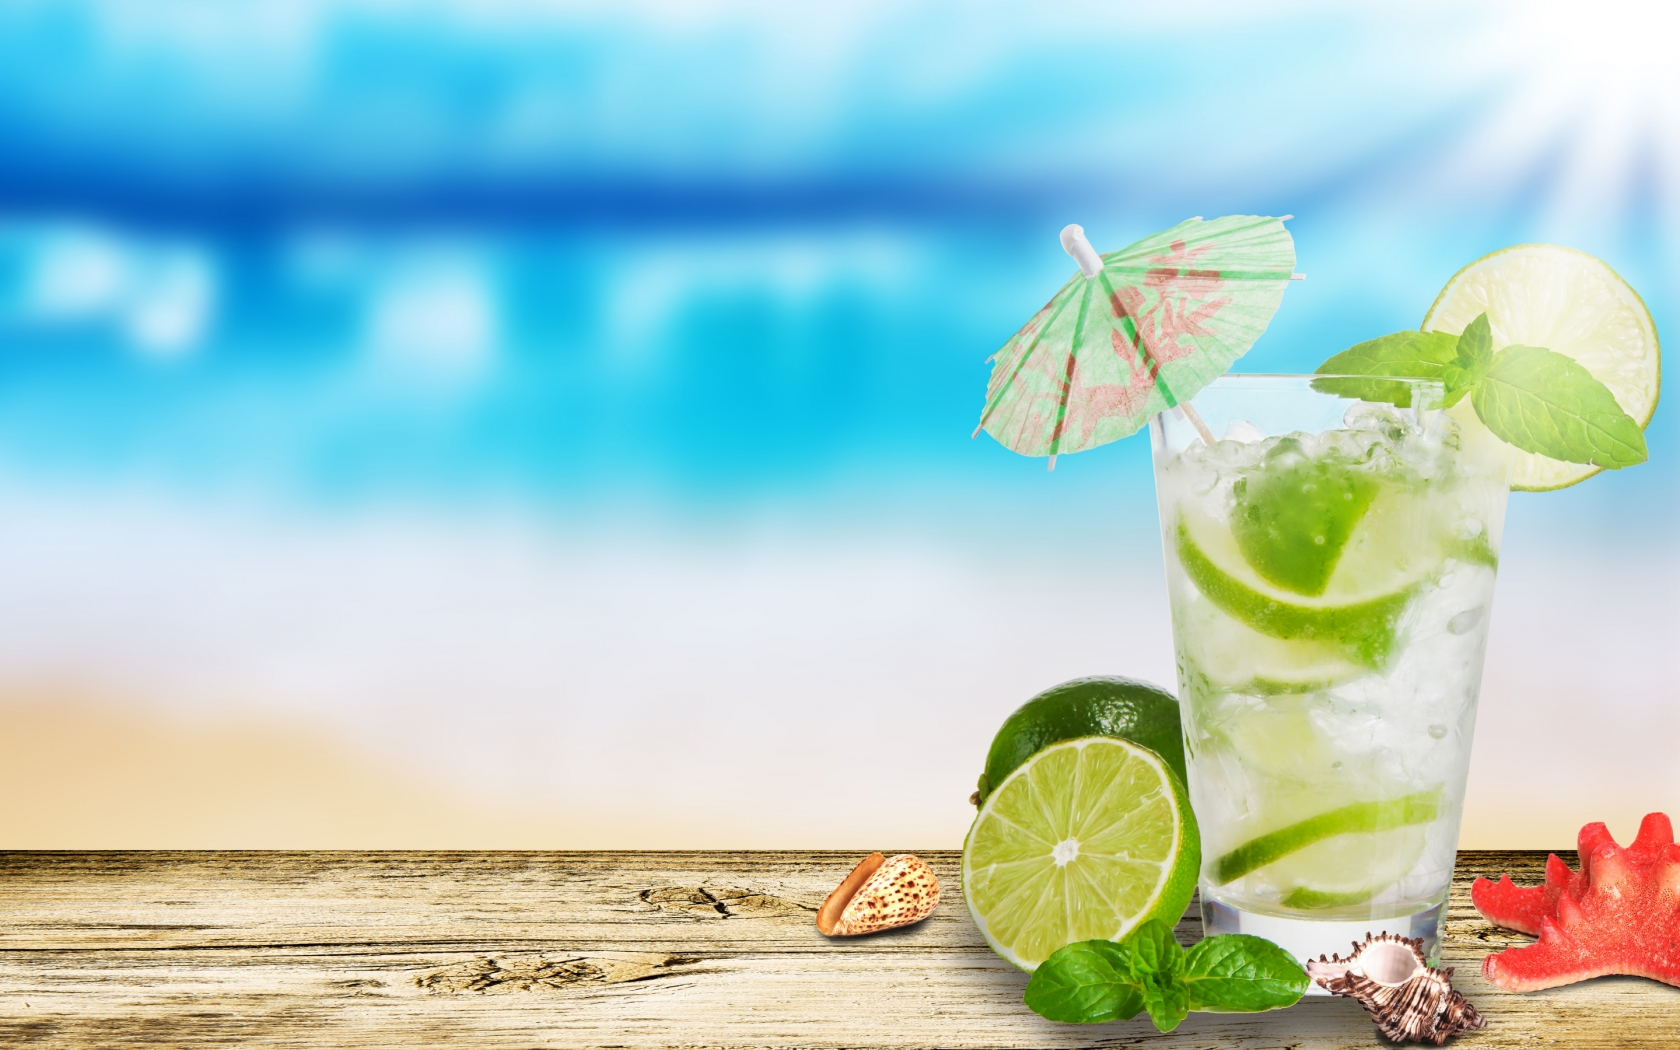 Mojito Cocktail for 1680 x 1050 widescreen resolution